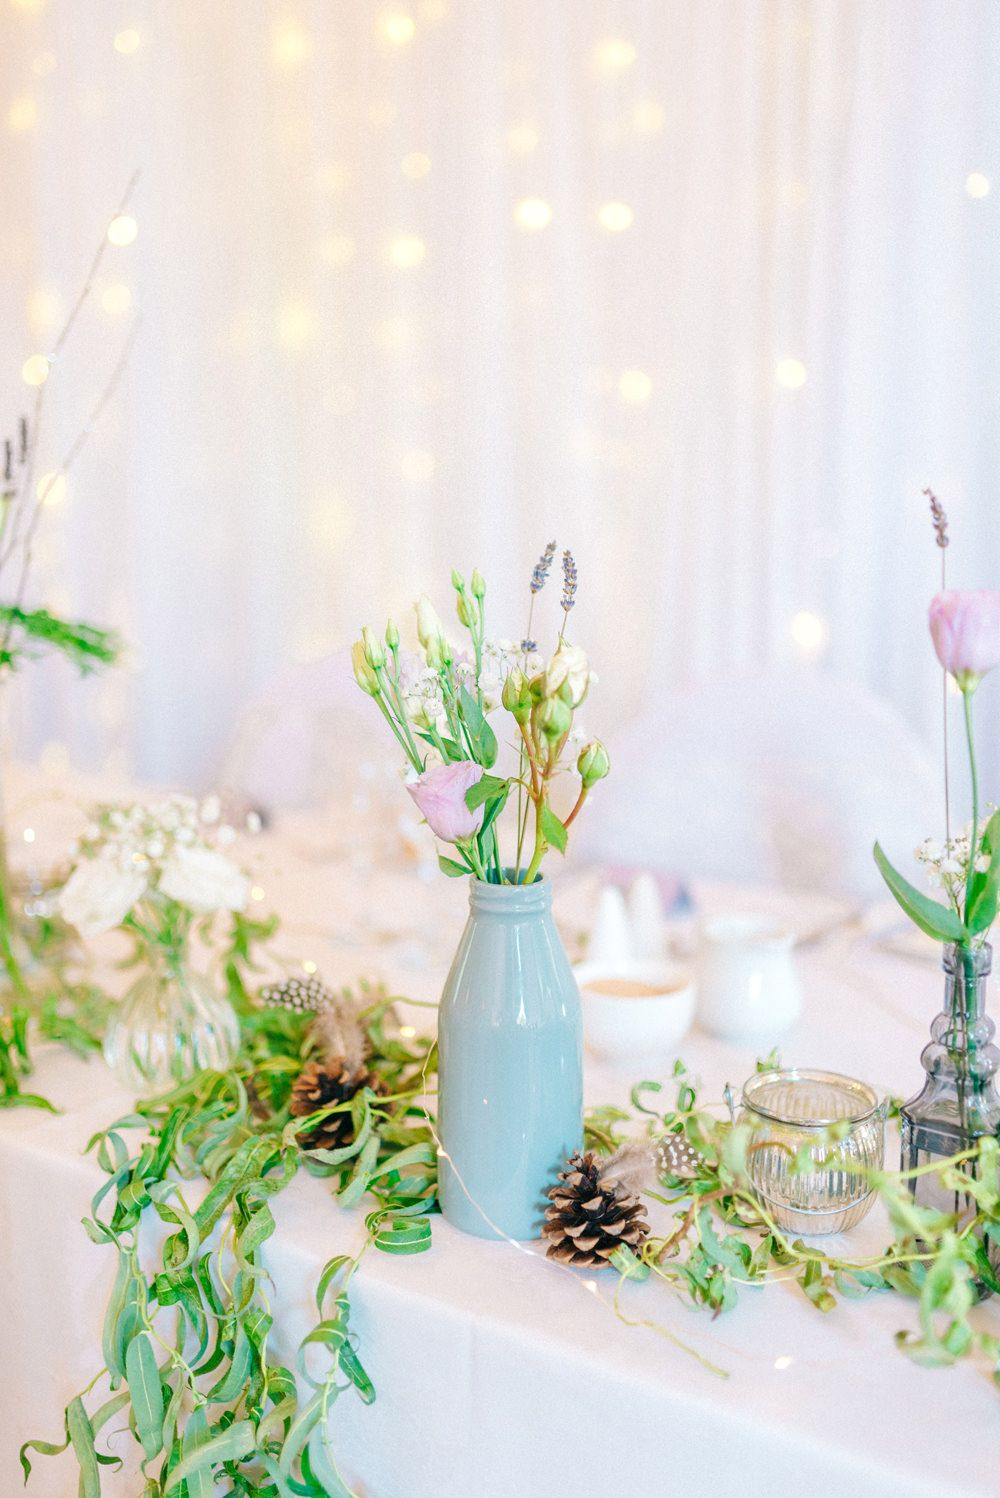 Vases with Wild Flower Stems Table Decor - Sarah-Jane Ethan Photography | Military Wedding at Hoyle Court in London | Essense of Australia Wedding Dress | Slaters Suits | Wild Flowers | Rustic Decor